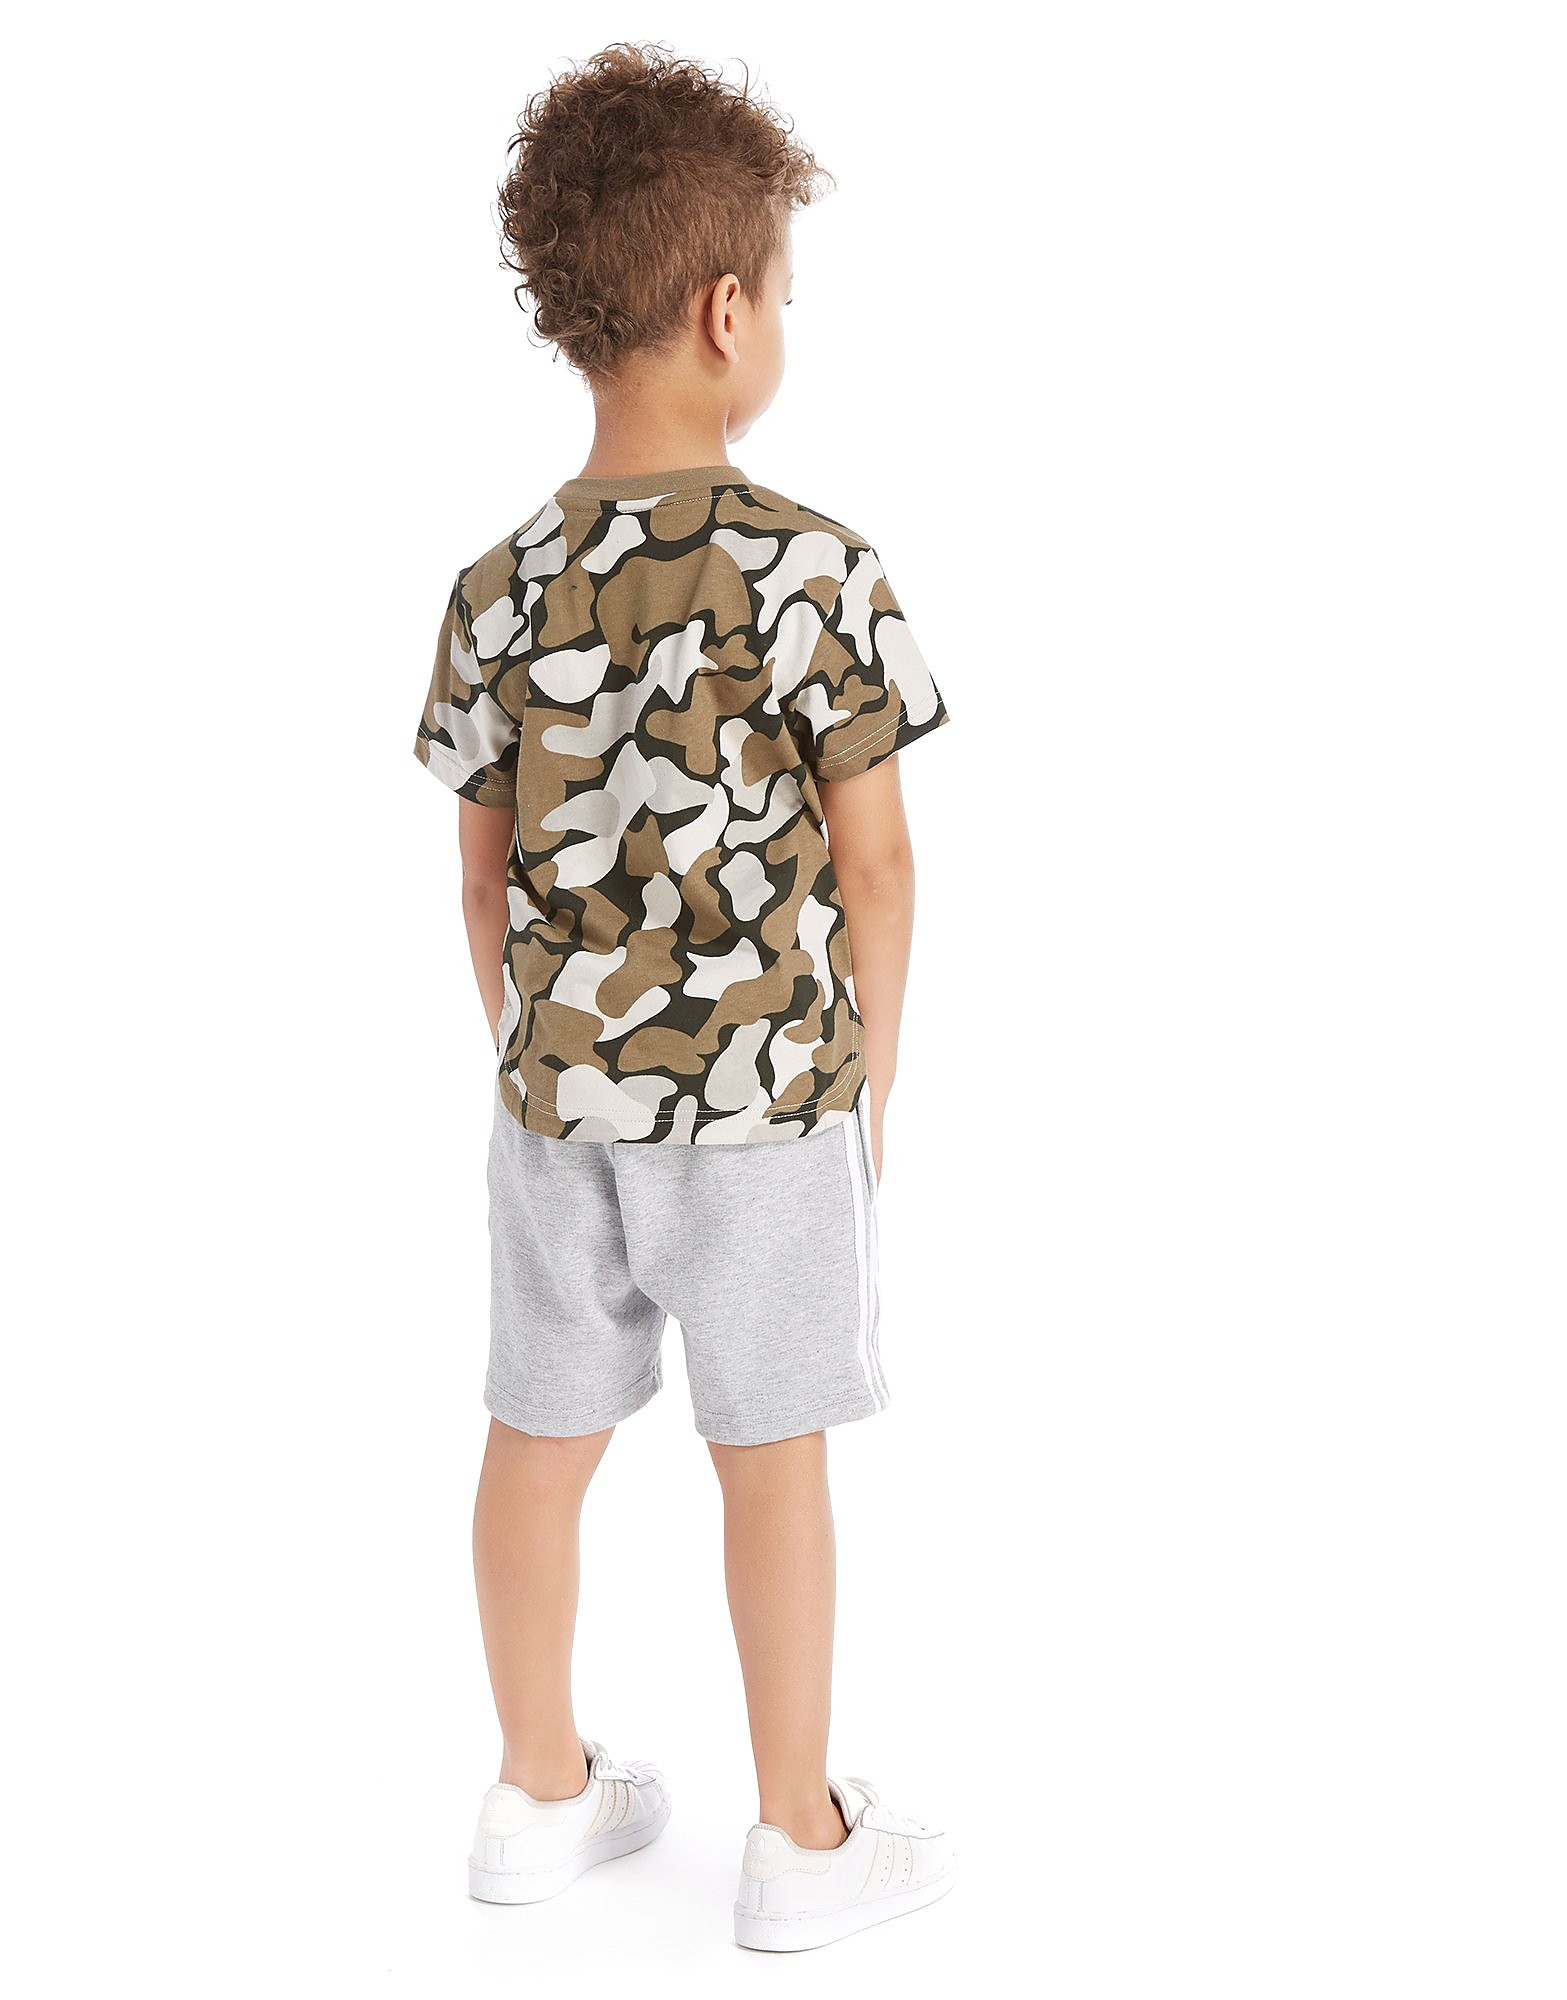 adidas Originals Camo T-Shirt/Shorts Set Children